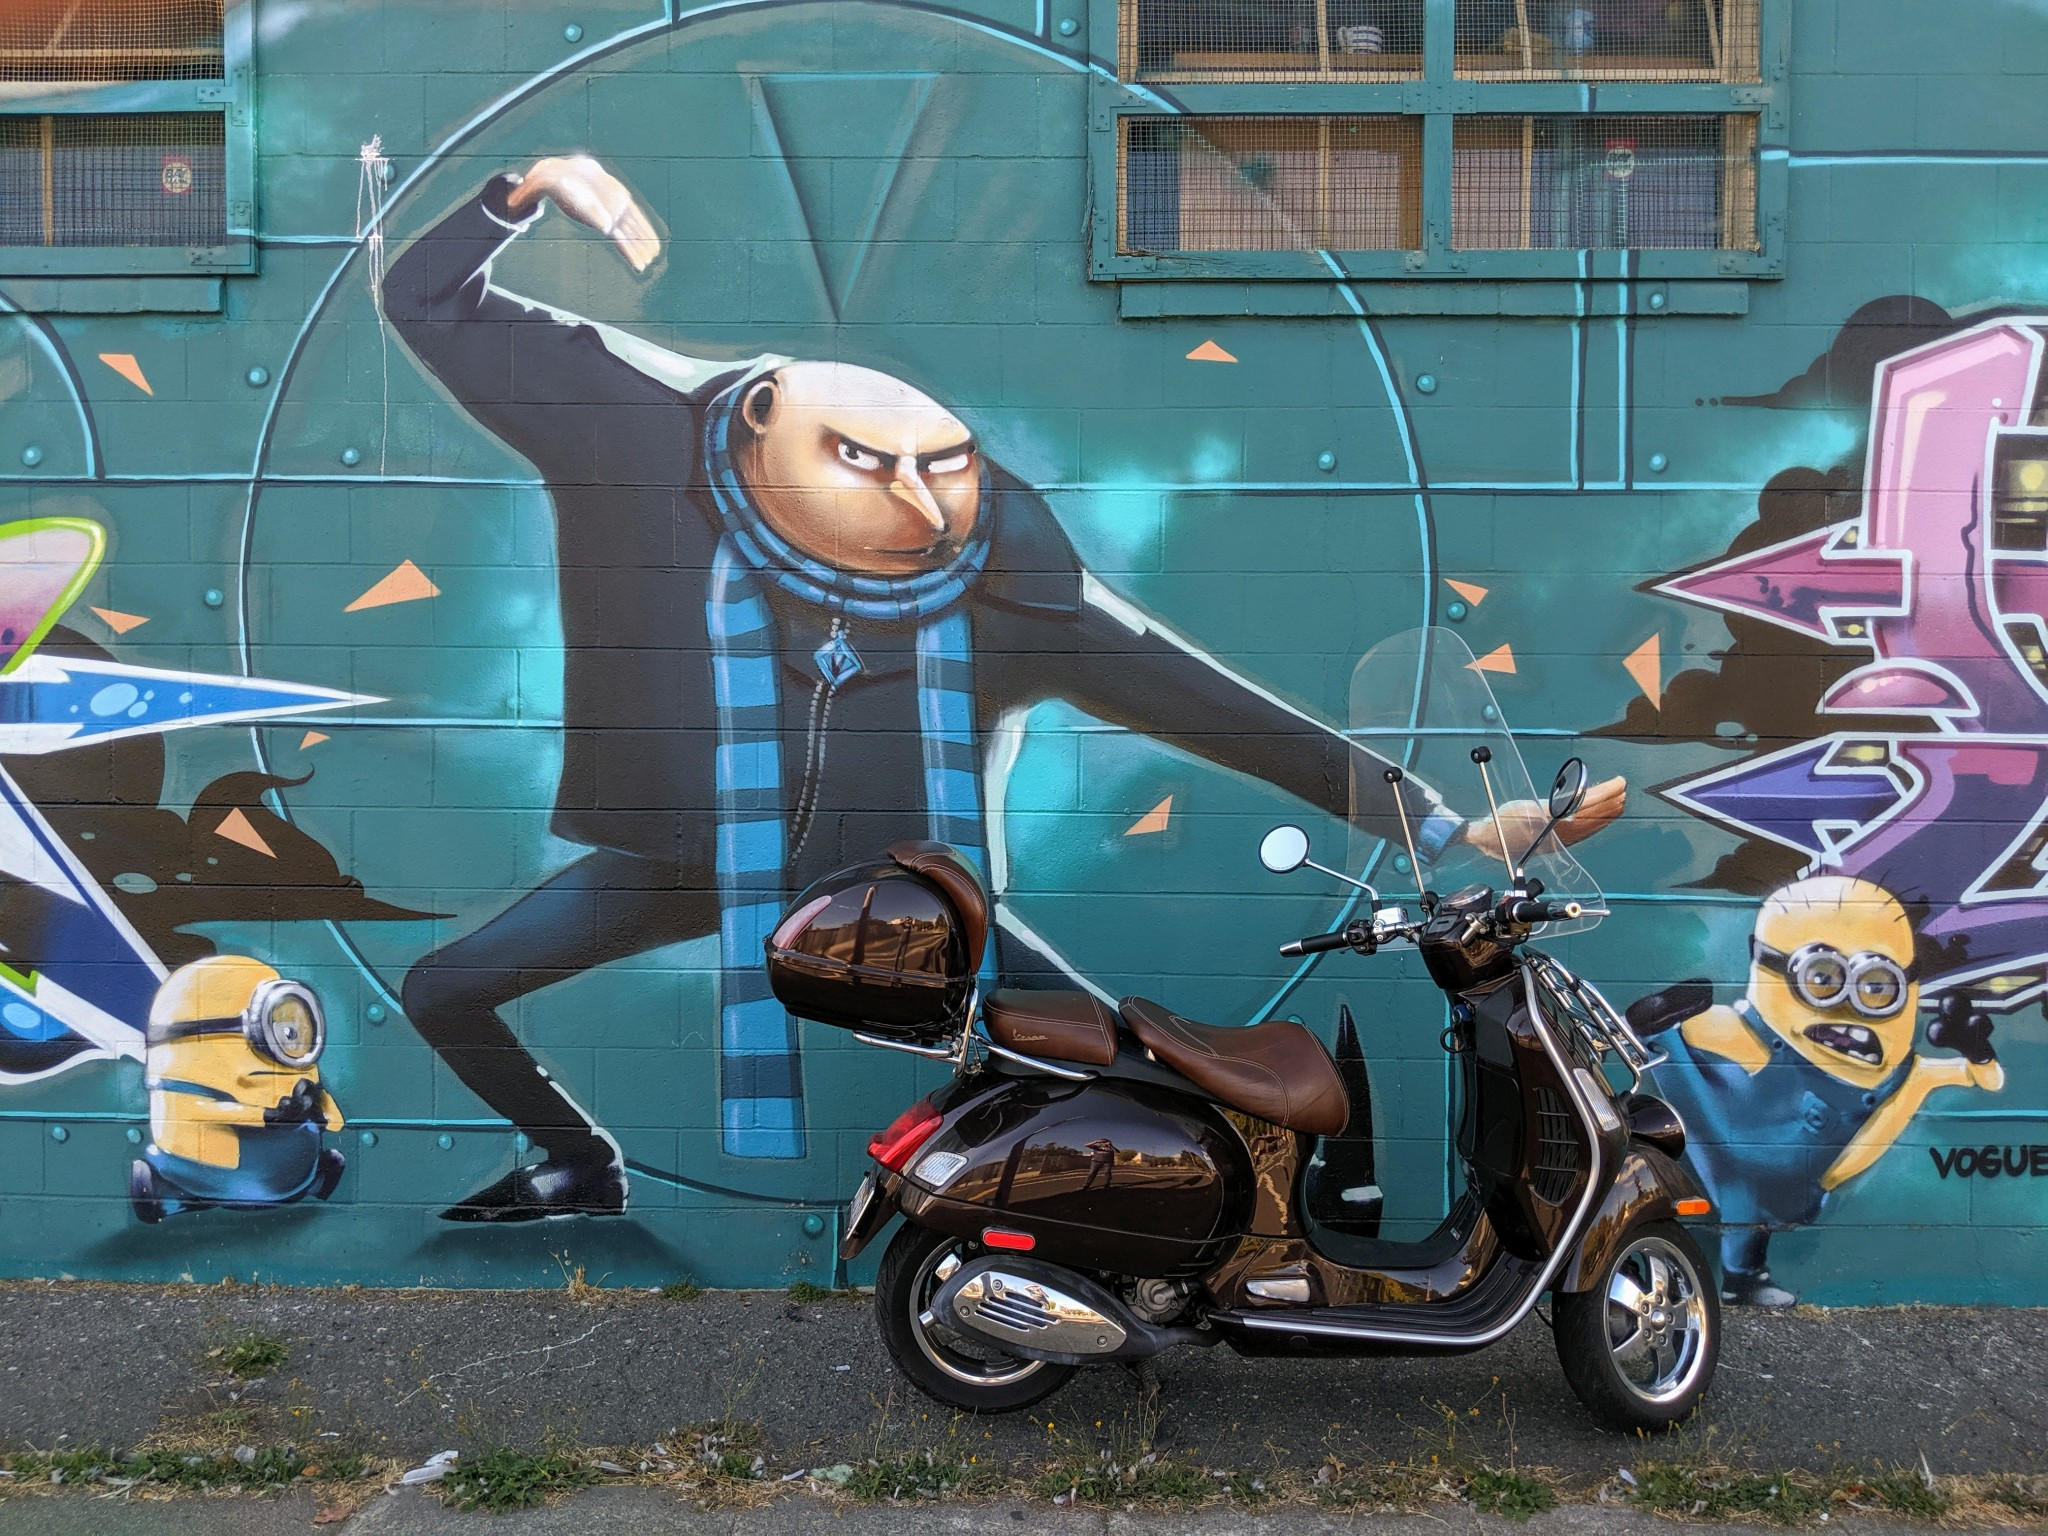 Mural: Despicable Me & the Vespa. Mural by artist  by Vogue TDK in Oakland, CA.